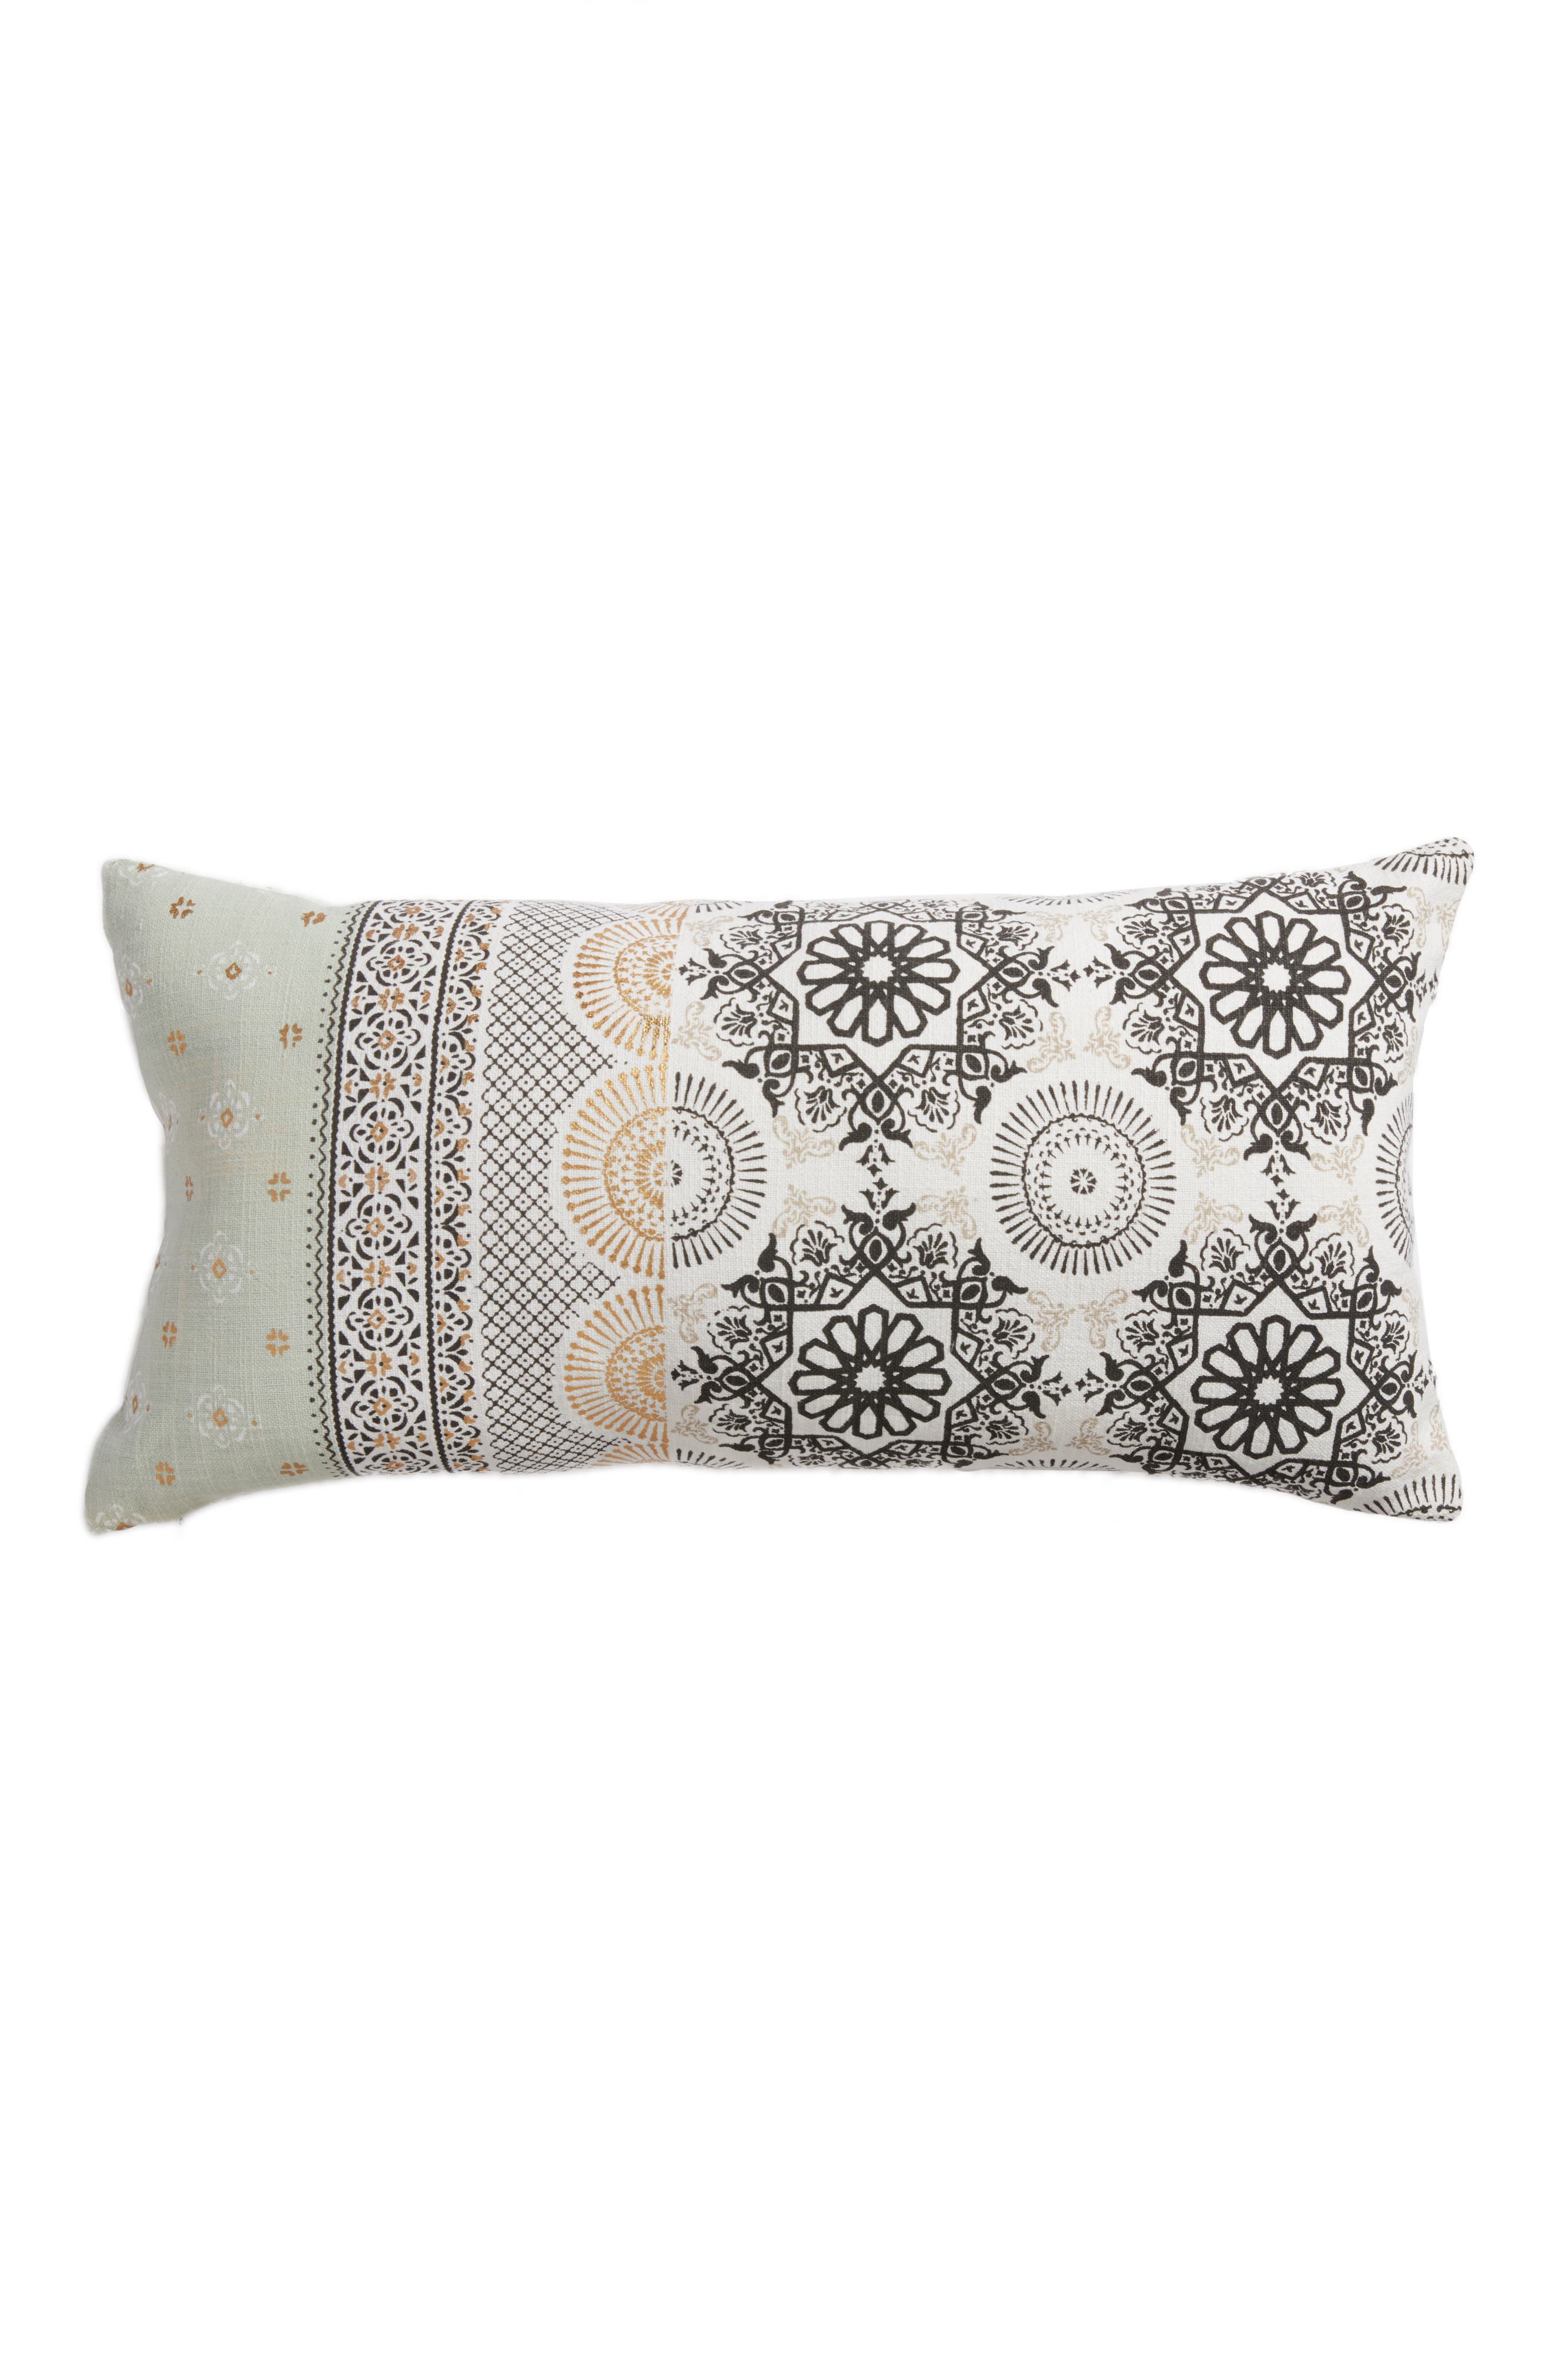 Moroccan Print Accent Pillow,                         Main,                         color, Ivory Multi